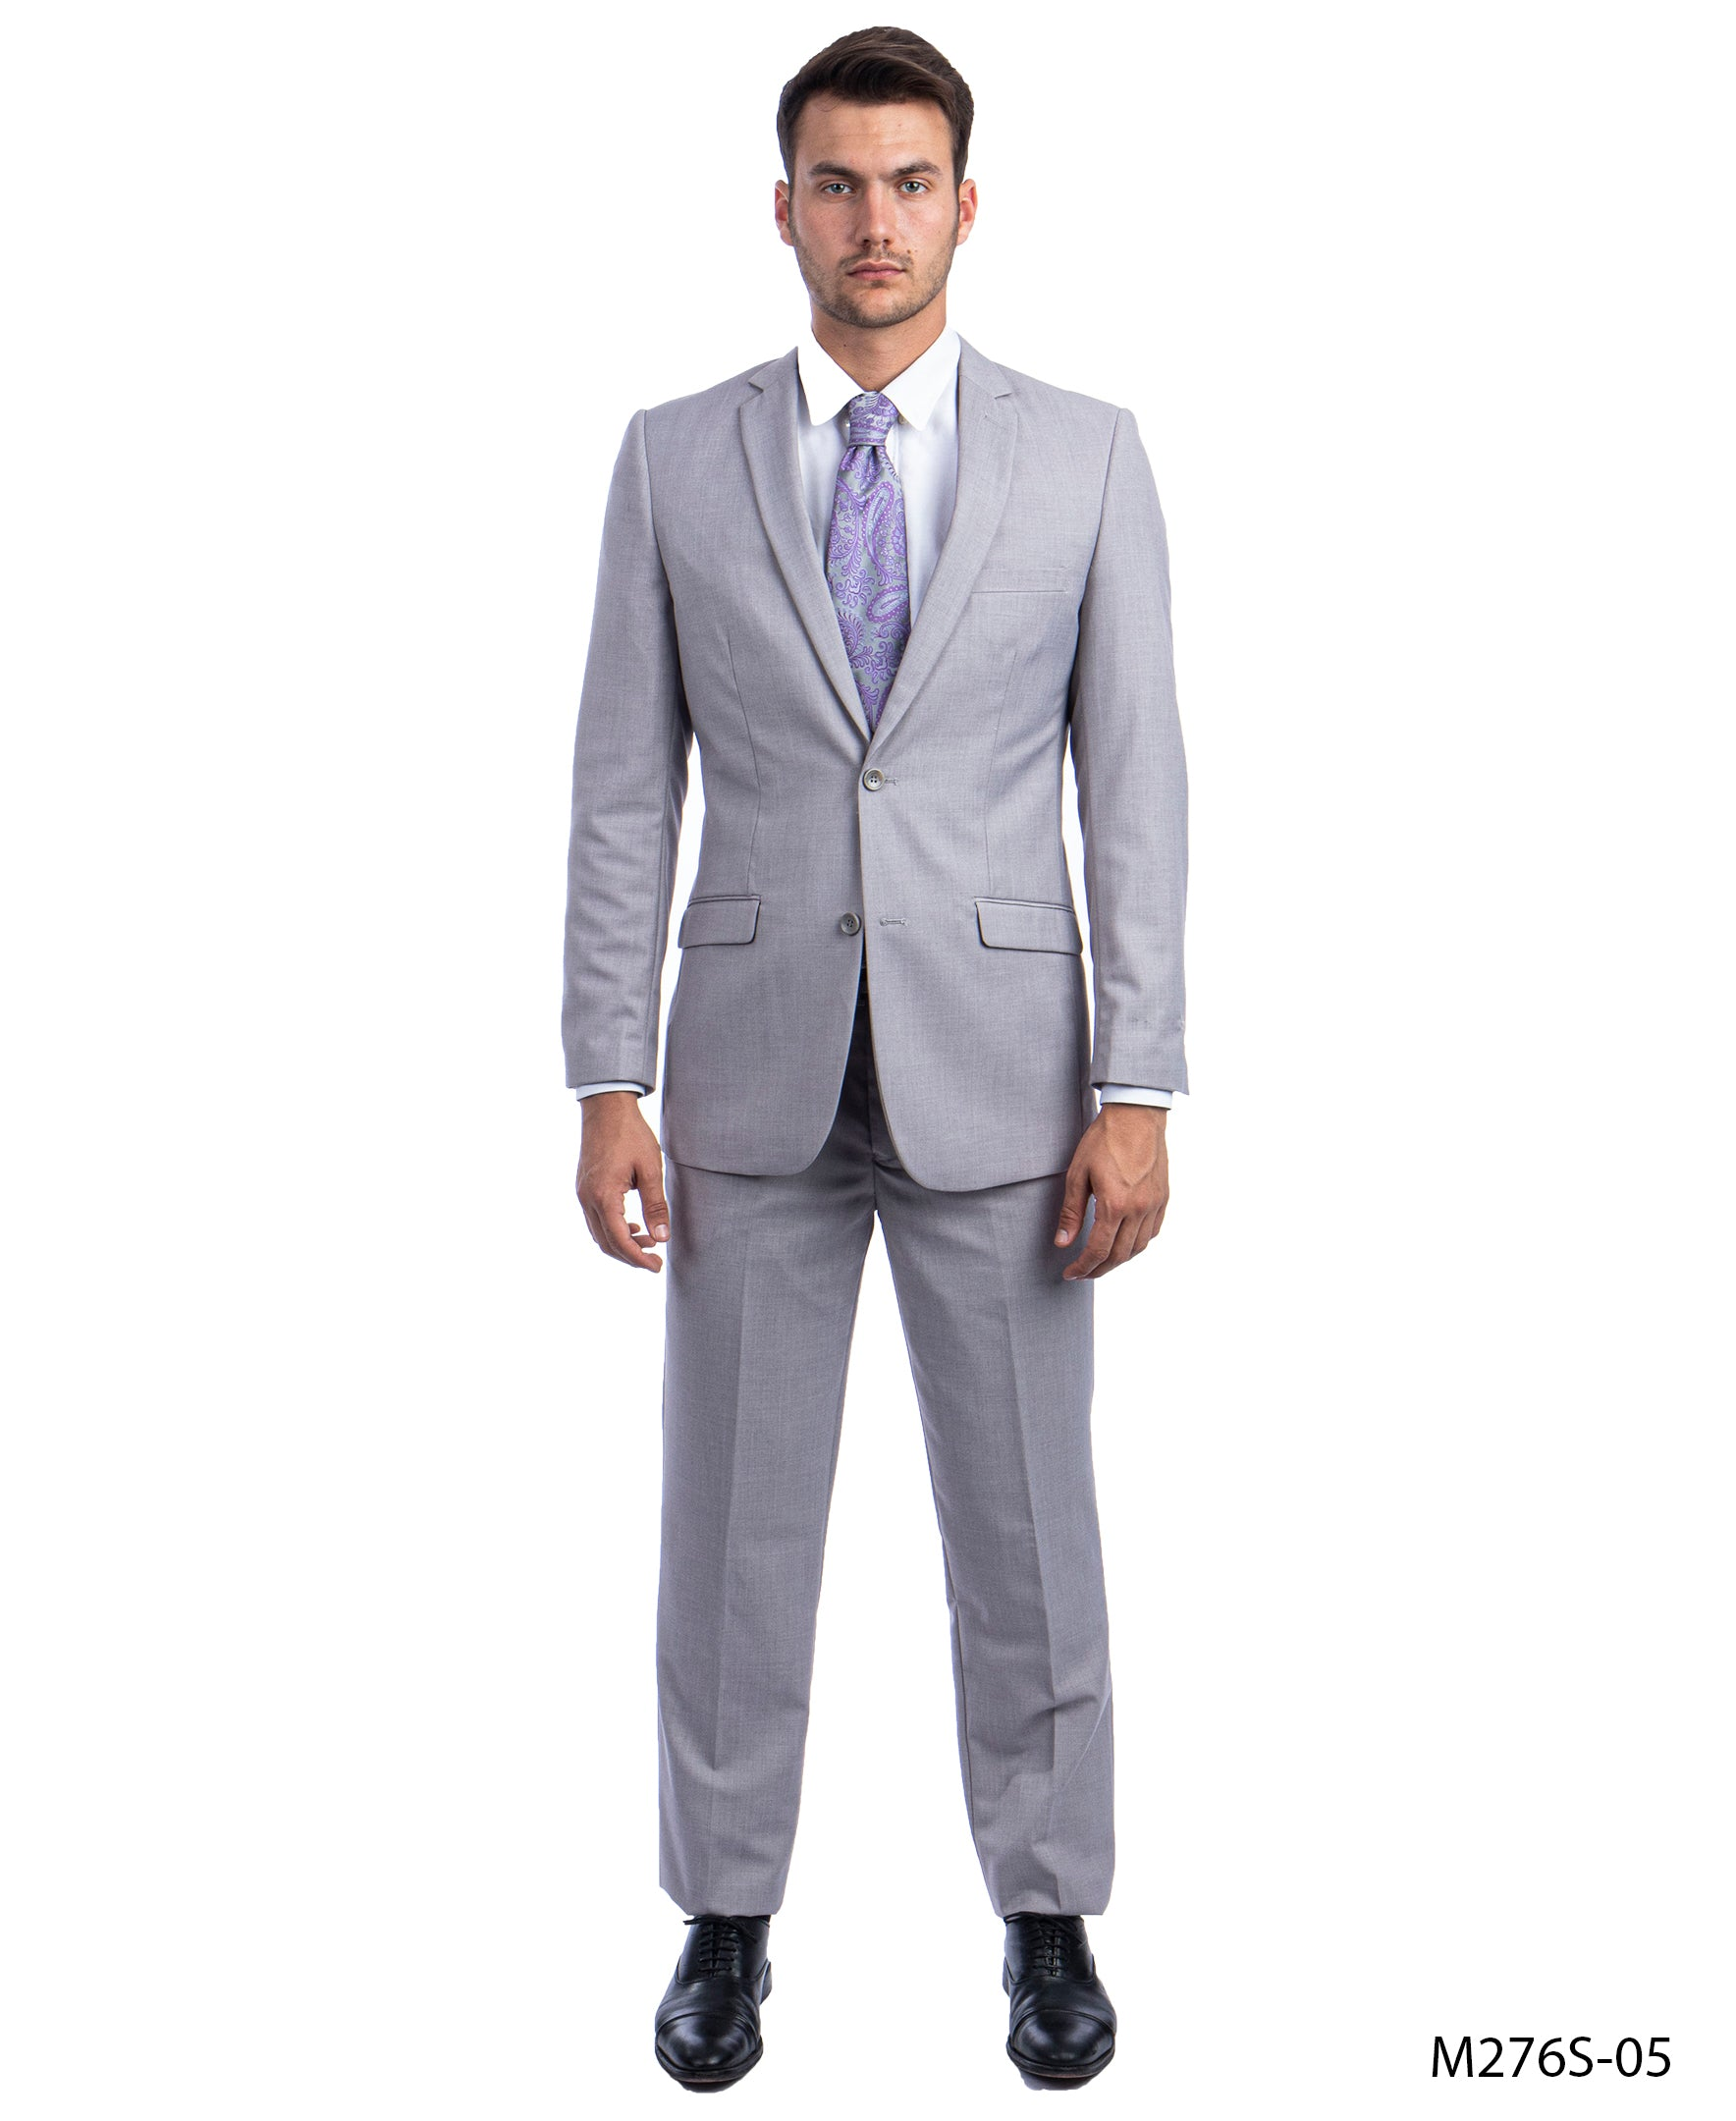 Lt. Gray Suit For Men Formal Suits For All Ocassions